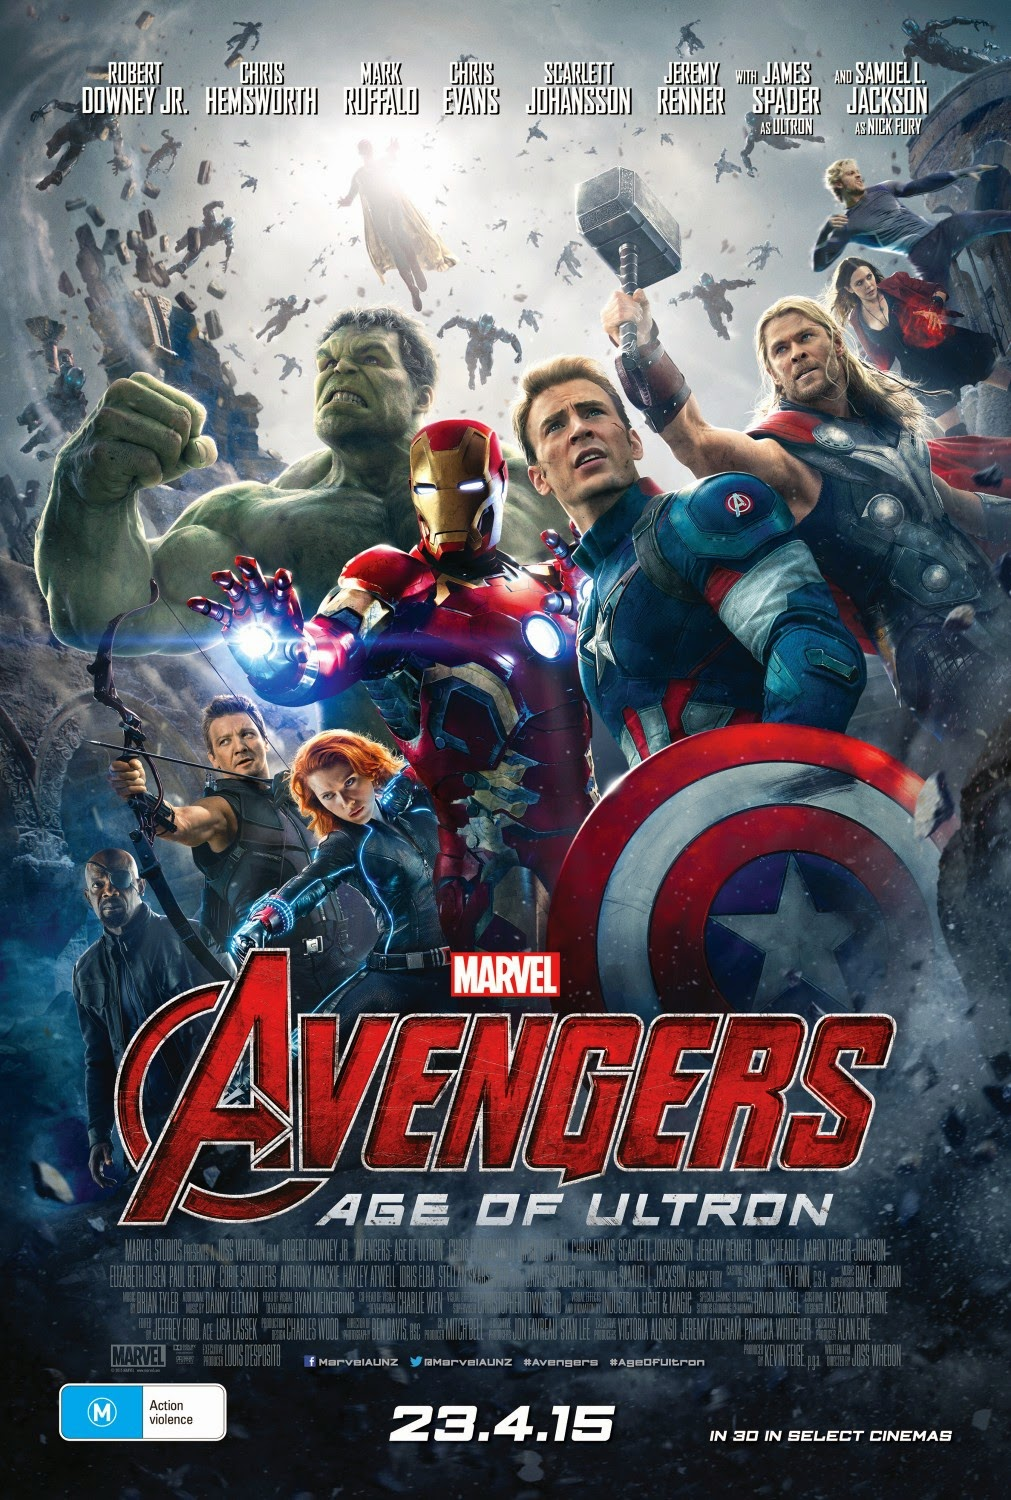 Mavel's Avengers: Age of Ultron International Movie Posters